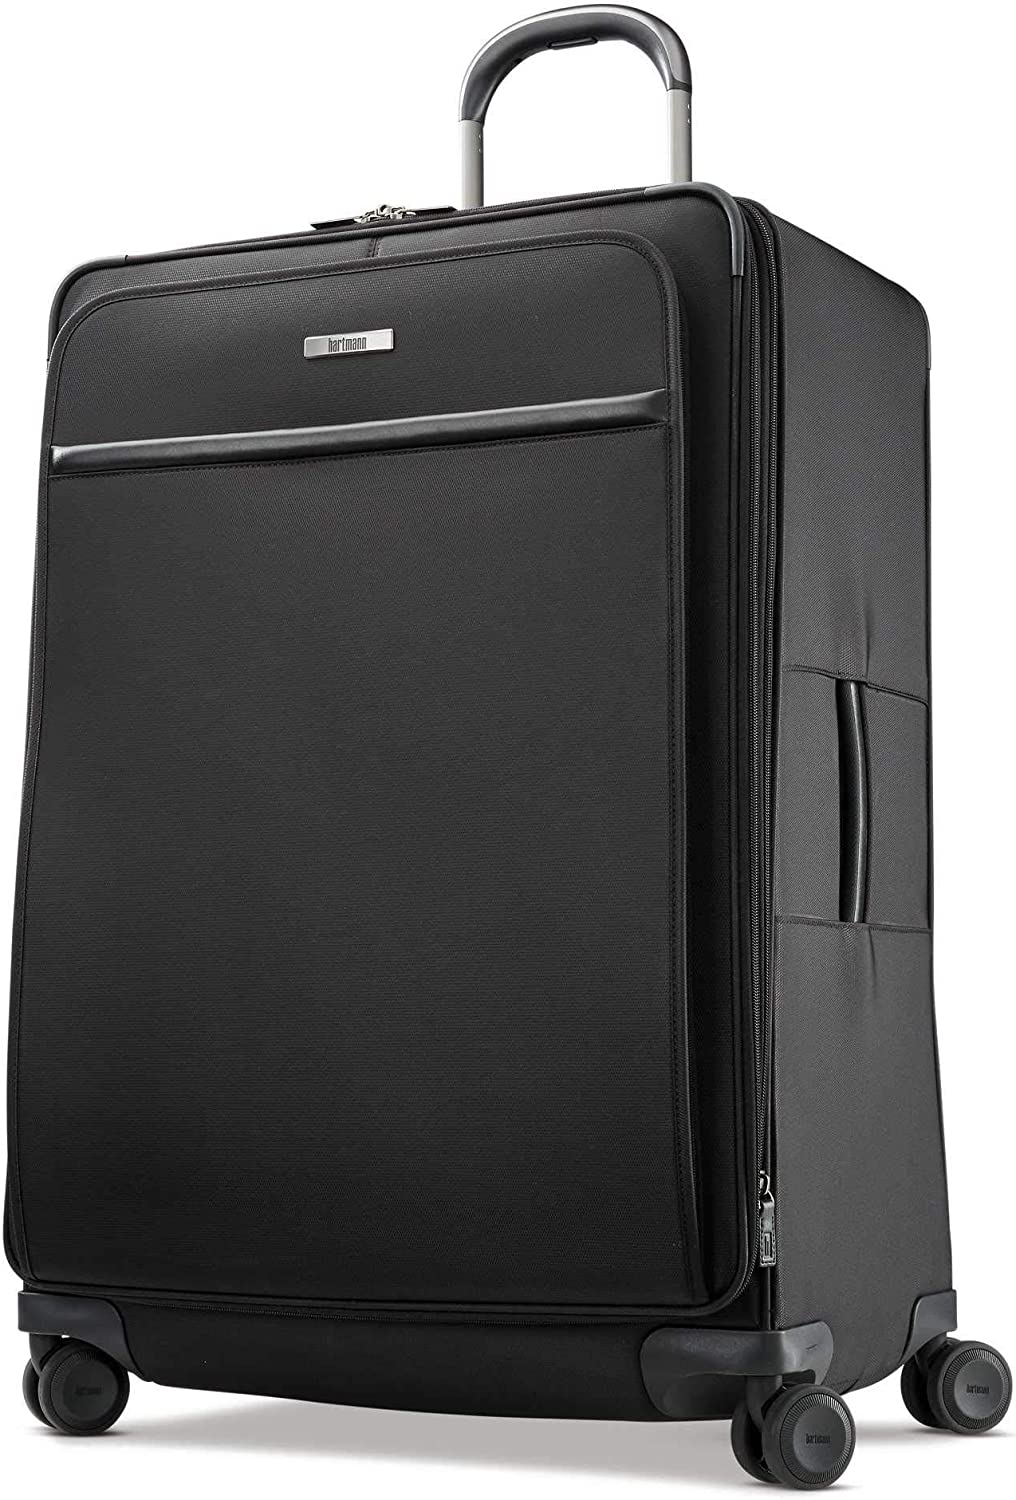 Hartmann Metropolitan 2 Expandable Softside Luggage with Double Spinner Wheels